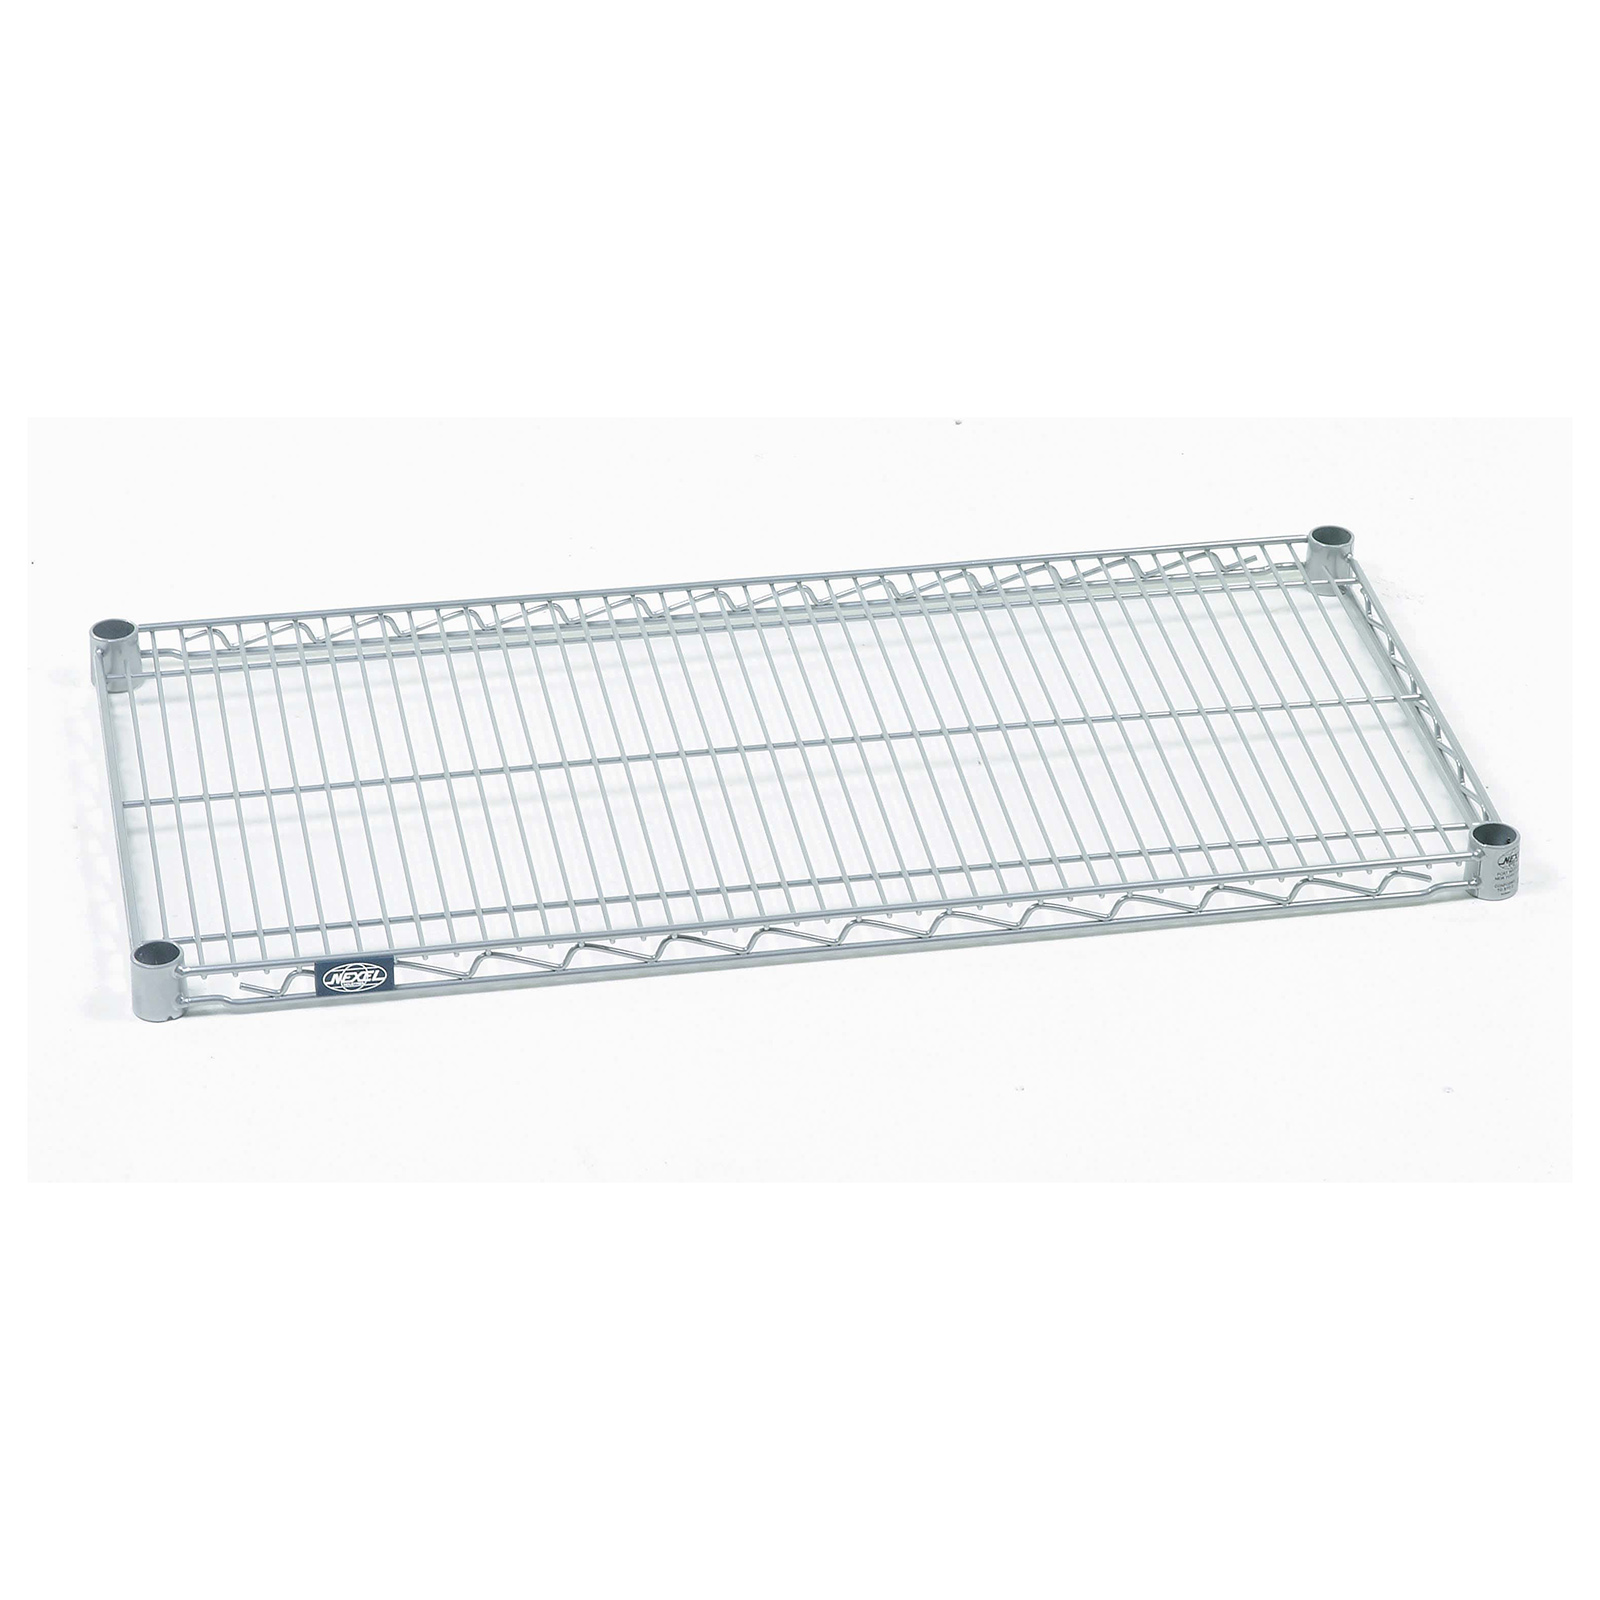 Nexel S1442EP wire shelves